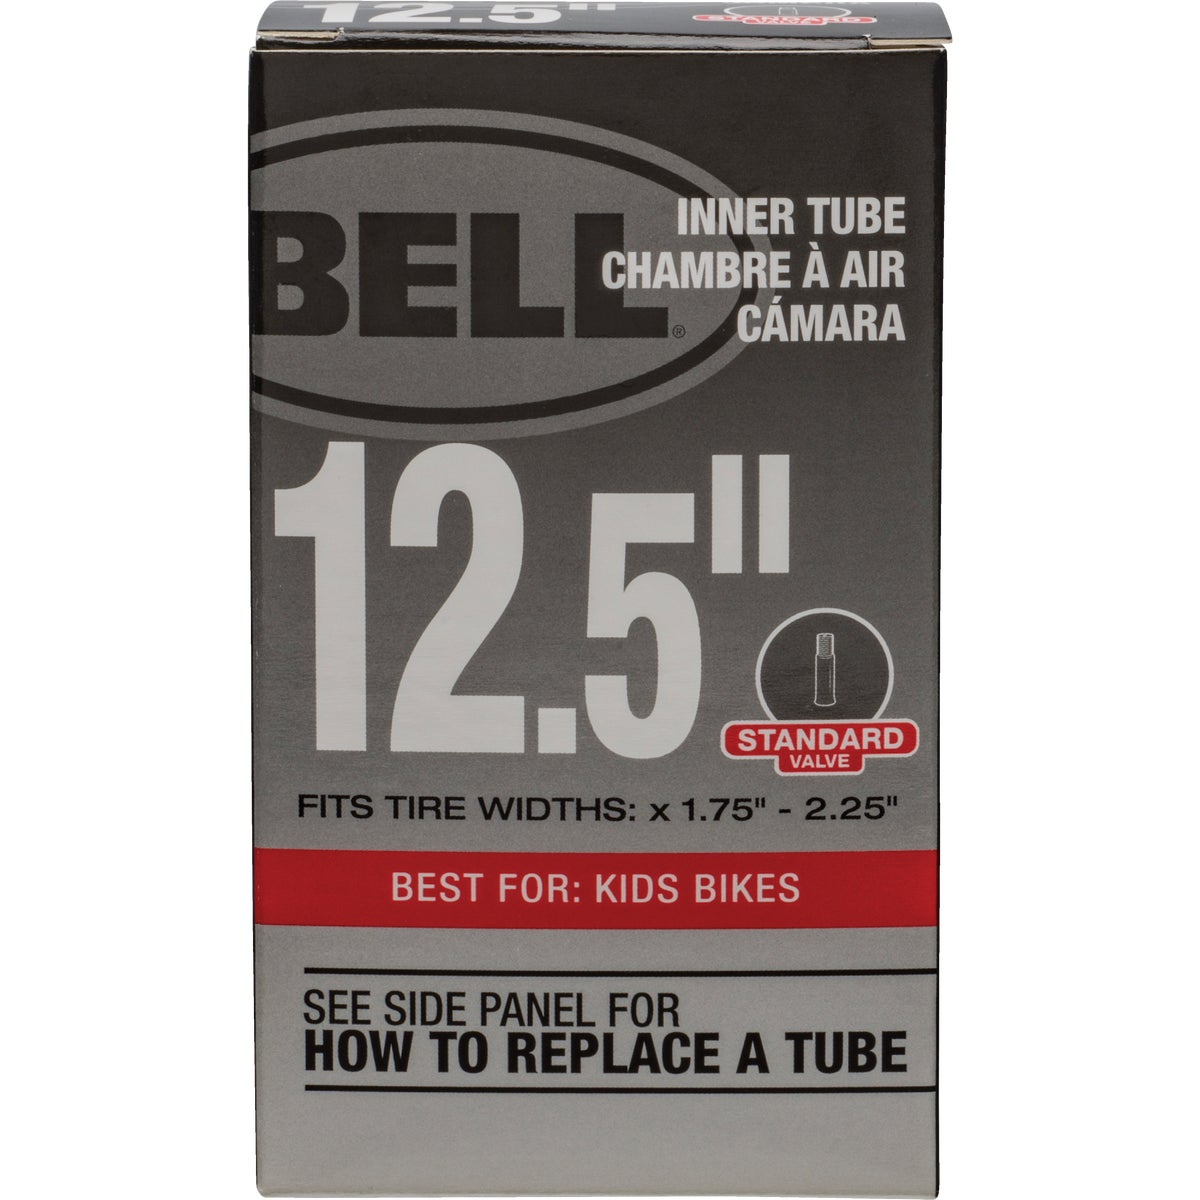 """Bell Sports Premium Quality Rubber Bicycle Tube-12.5"""" UNIVRSL INNER TUBE at Sears.com"""